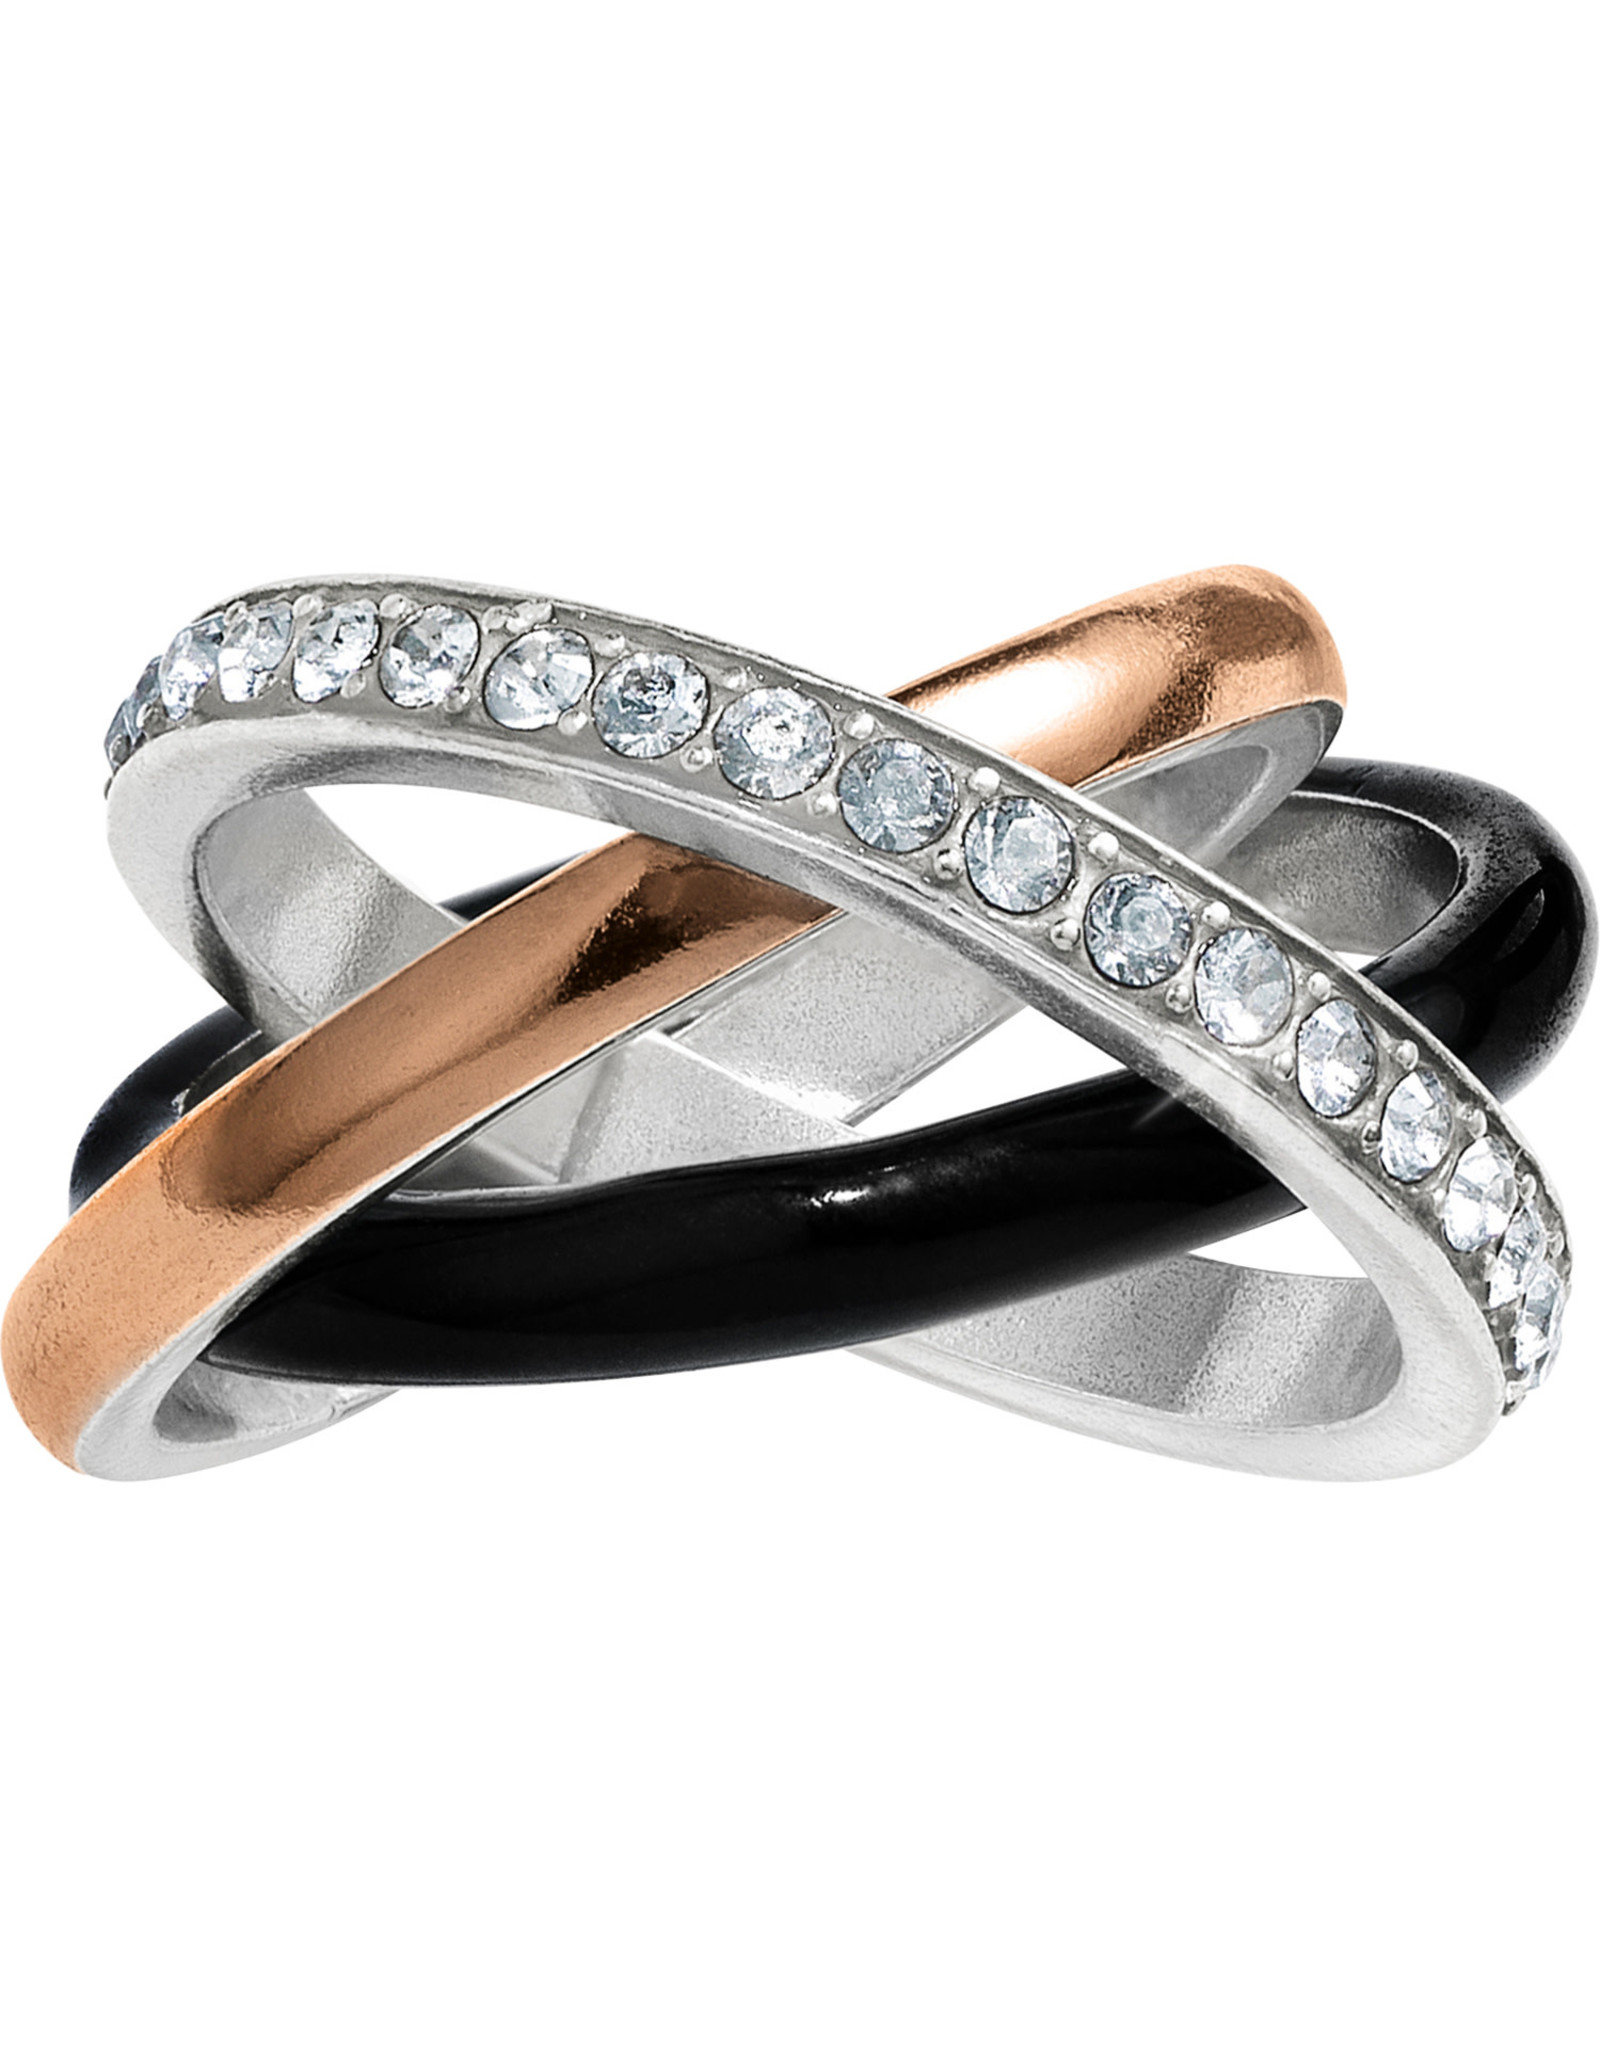 Brighton Neptunes Rings Black Trio Ring Size 08